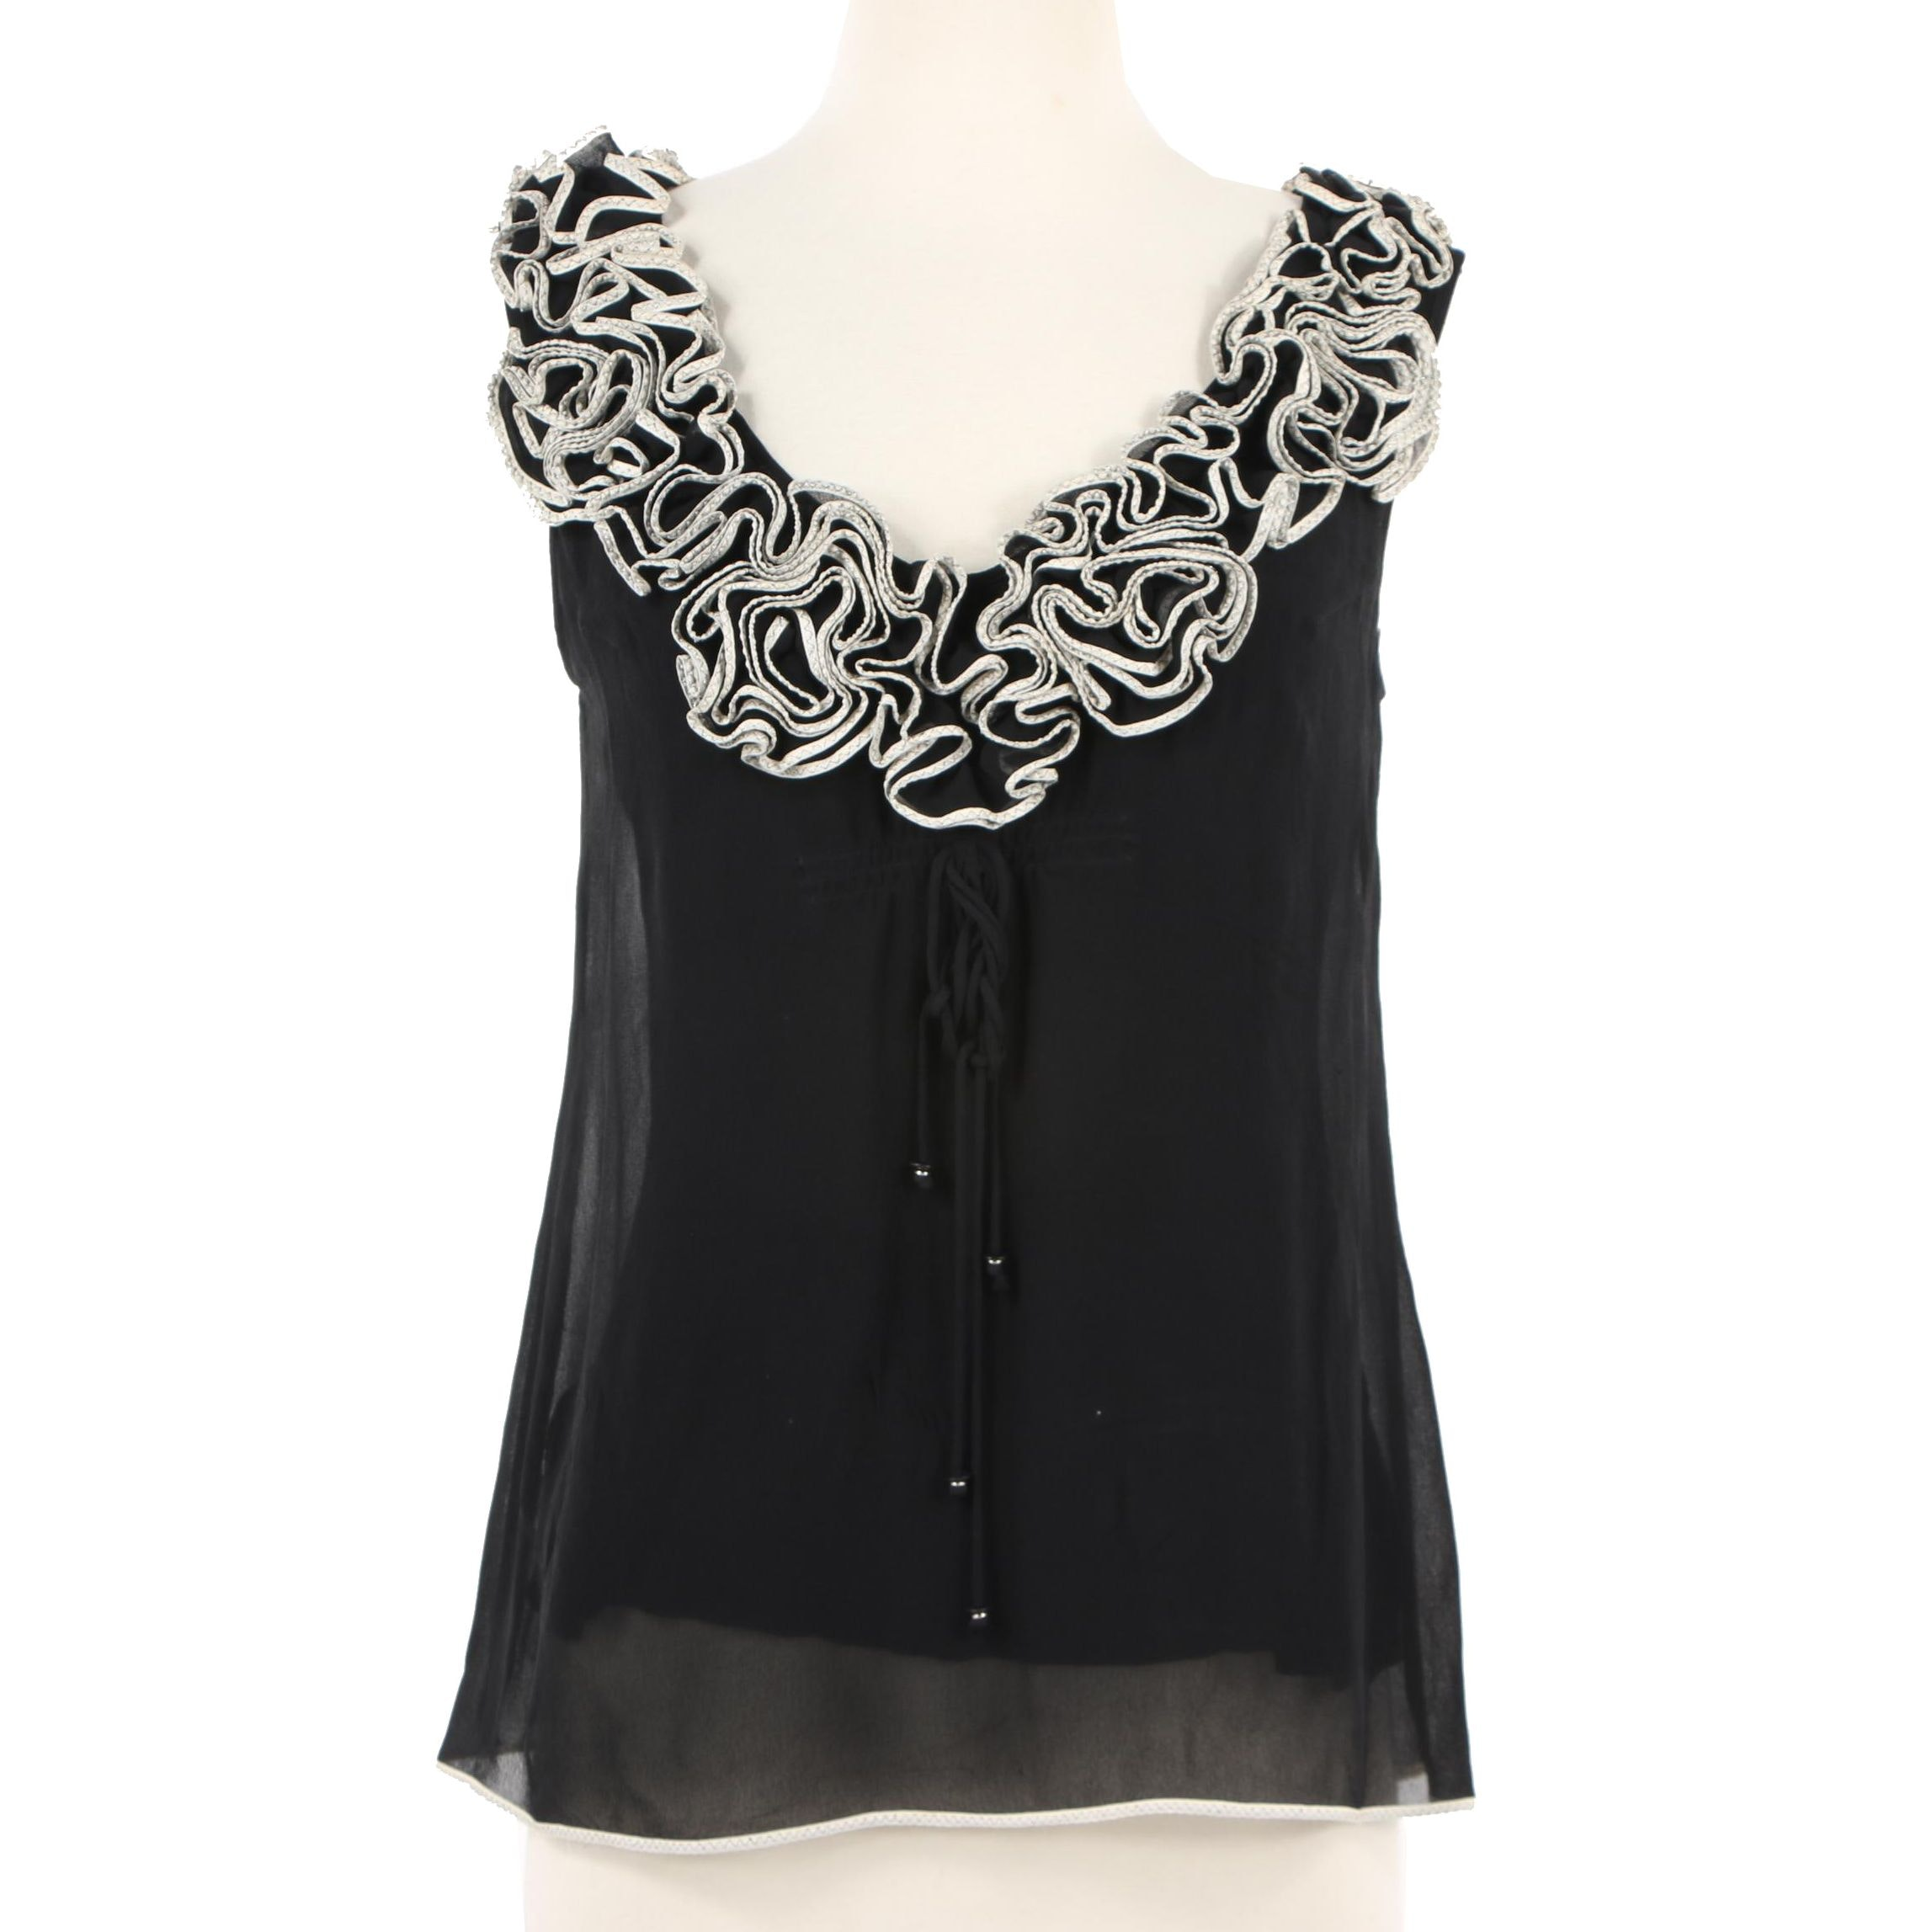 Yoana Baraschi Black Silk Sleeveless Blouse with Ruffled Neckline